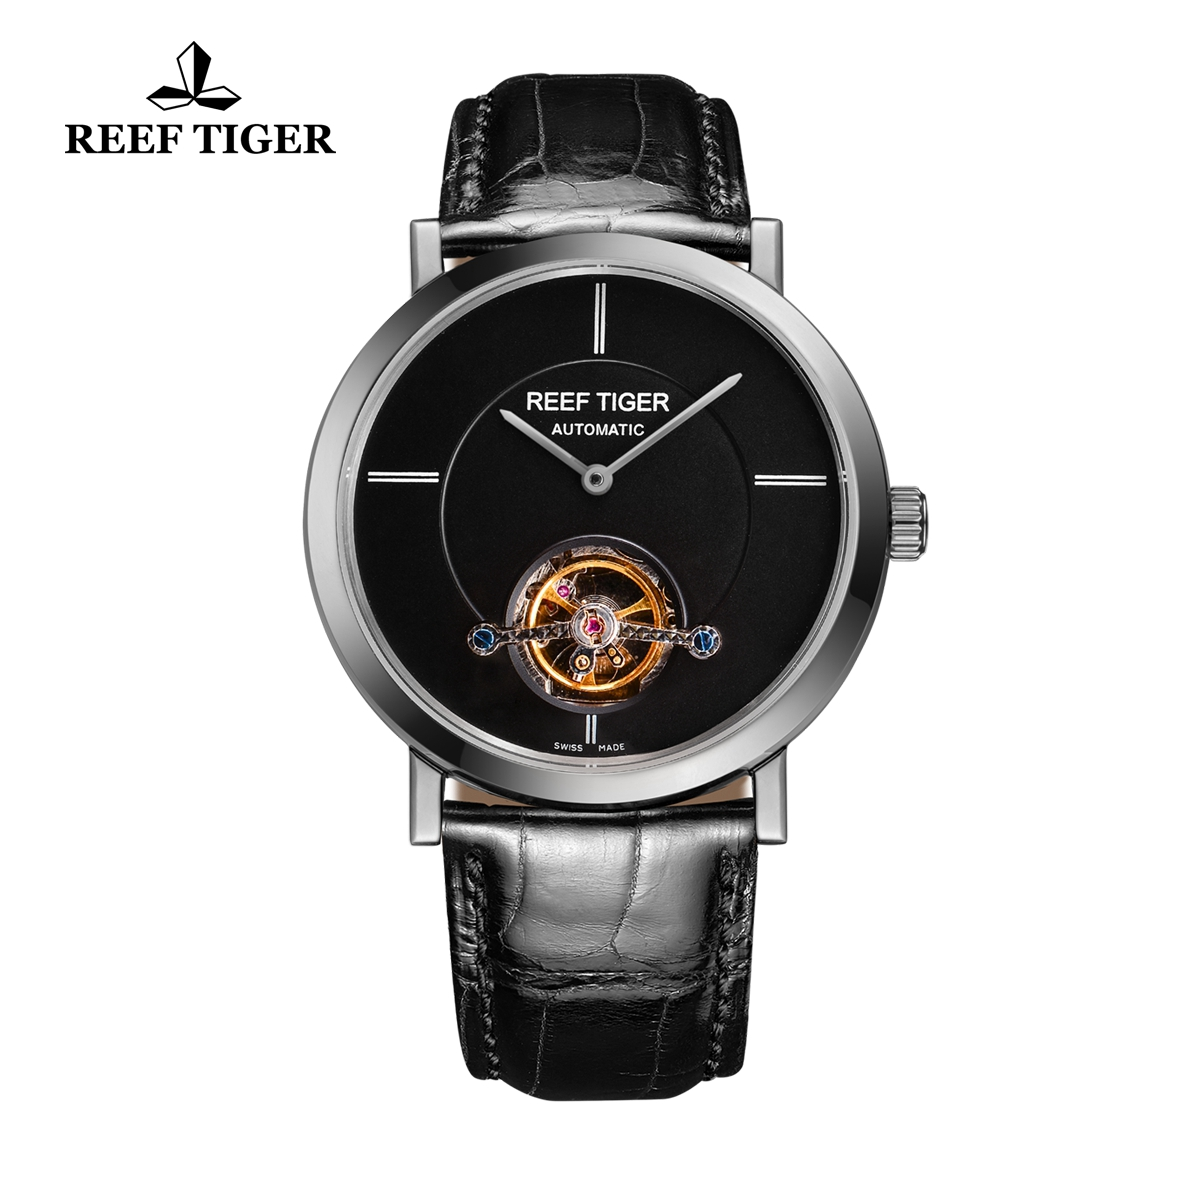 Reef Tiger Business Watch Stainless Steel Black Dial Automatic Tourbillon Watch RGA1610-YBB